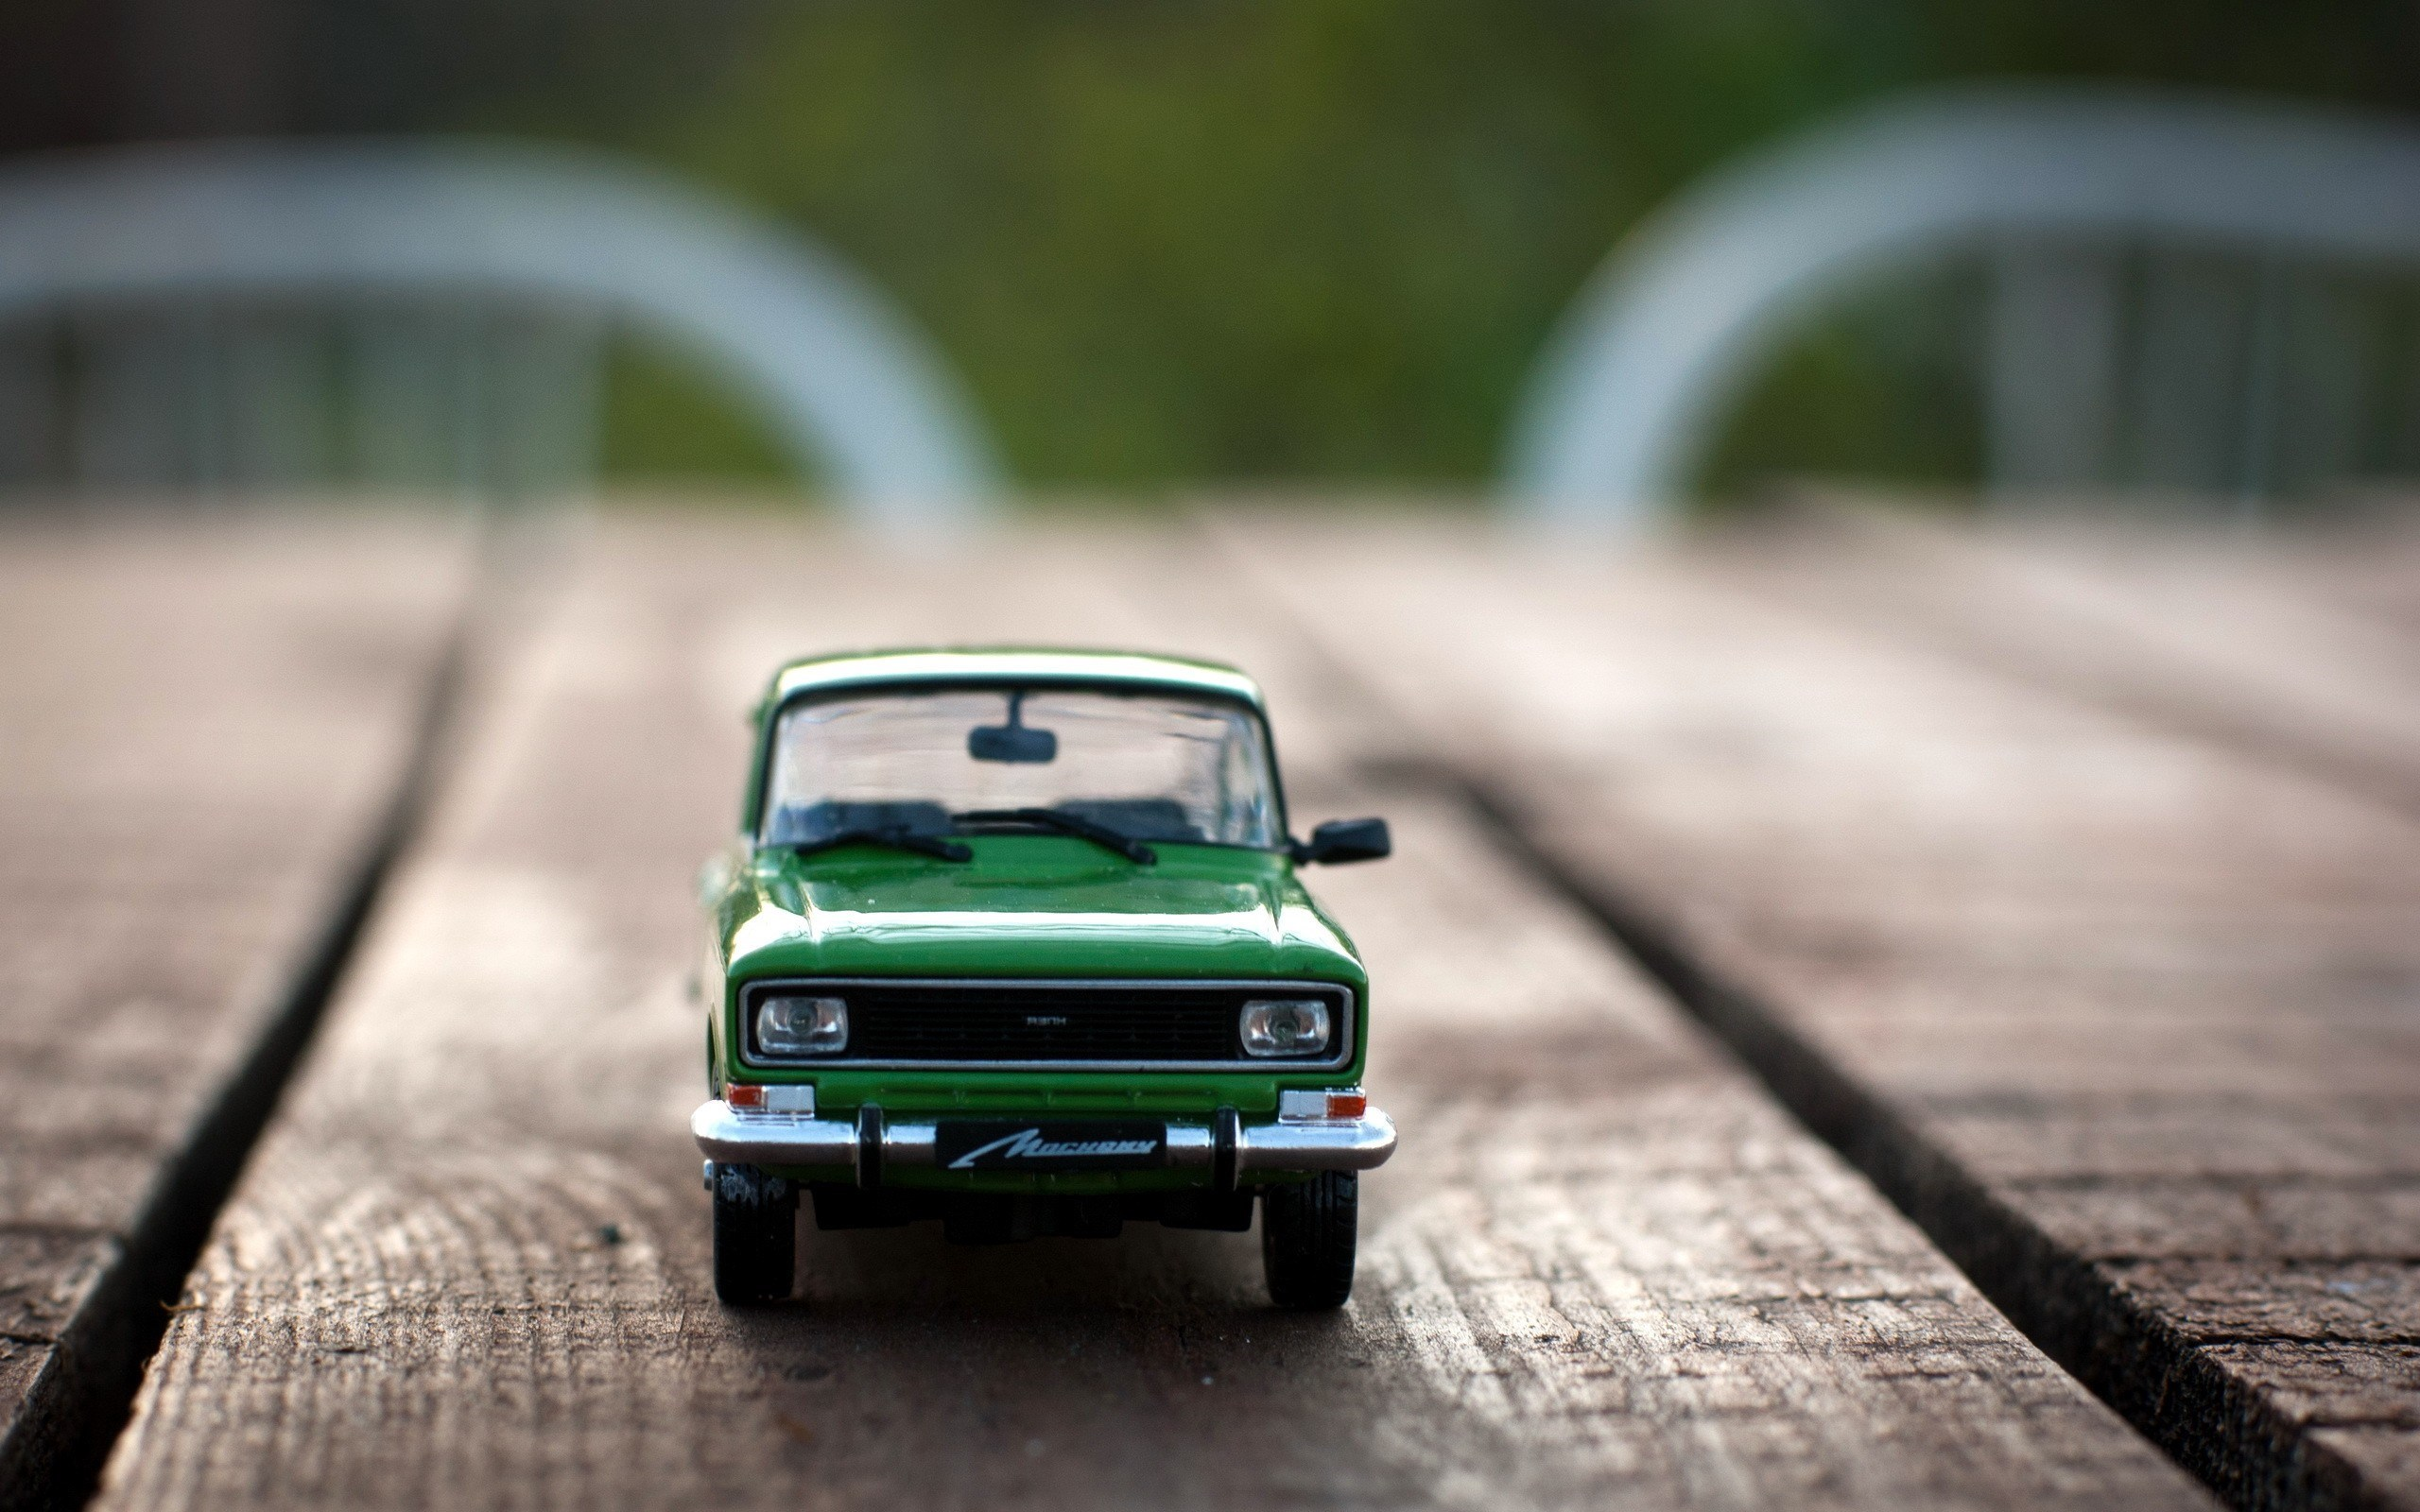 Toy Car Wallpapers